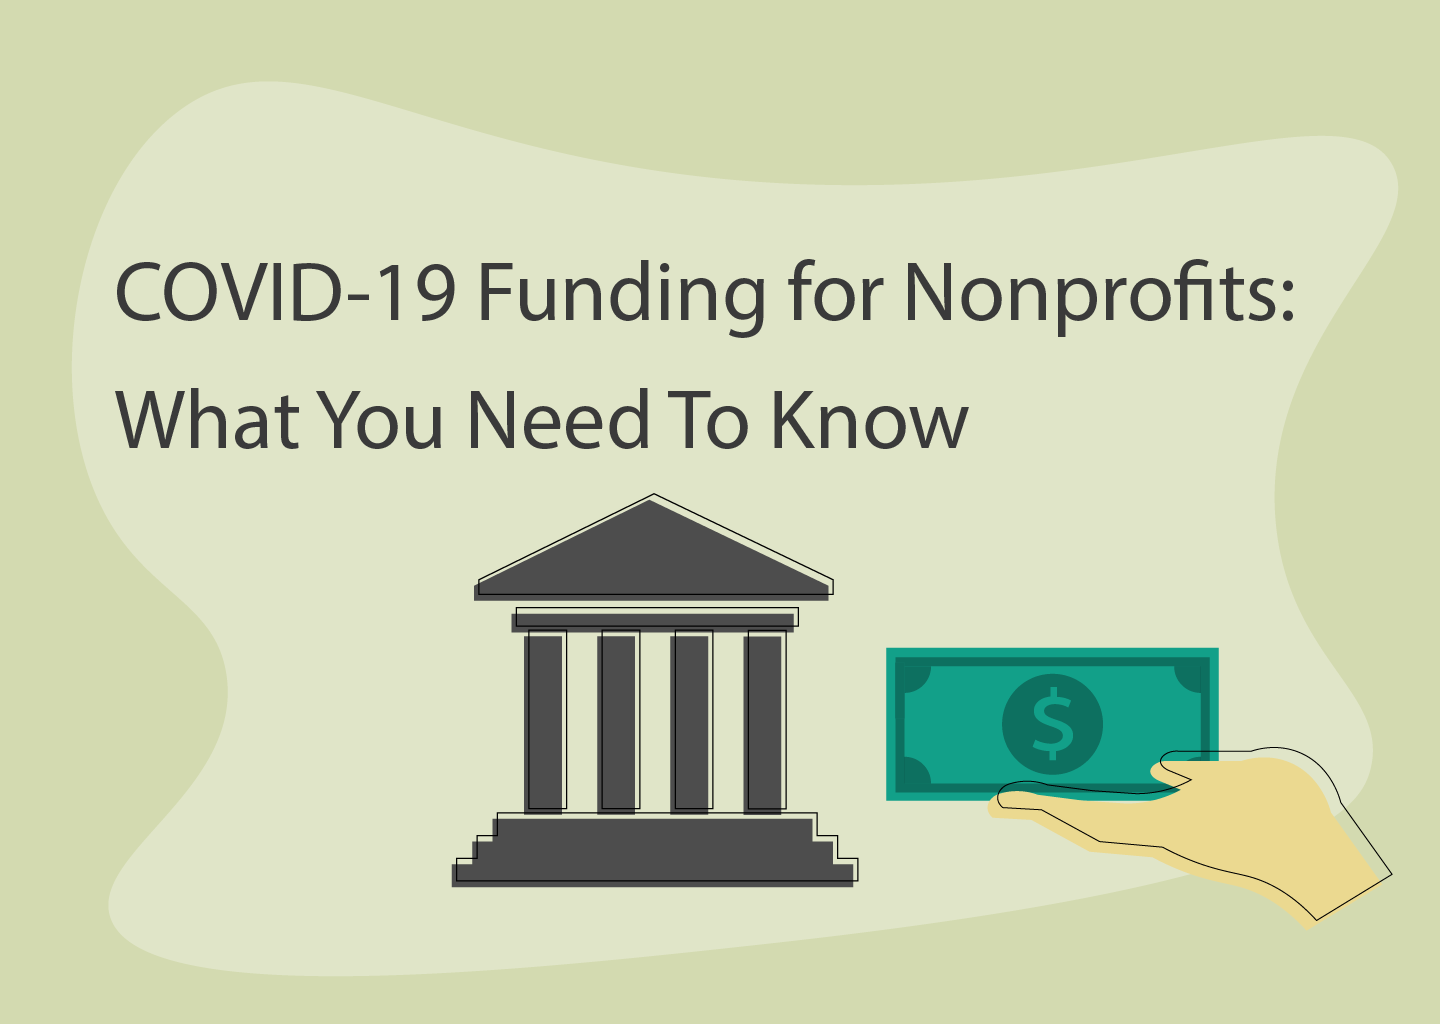 COVID-19 funding for nonprofits